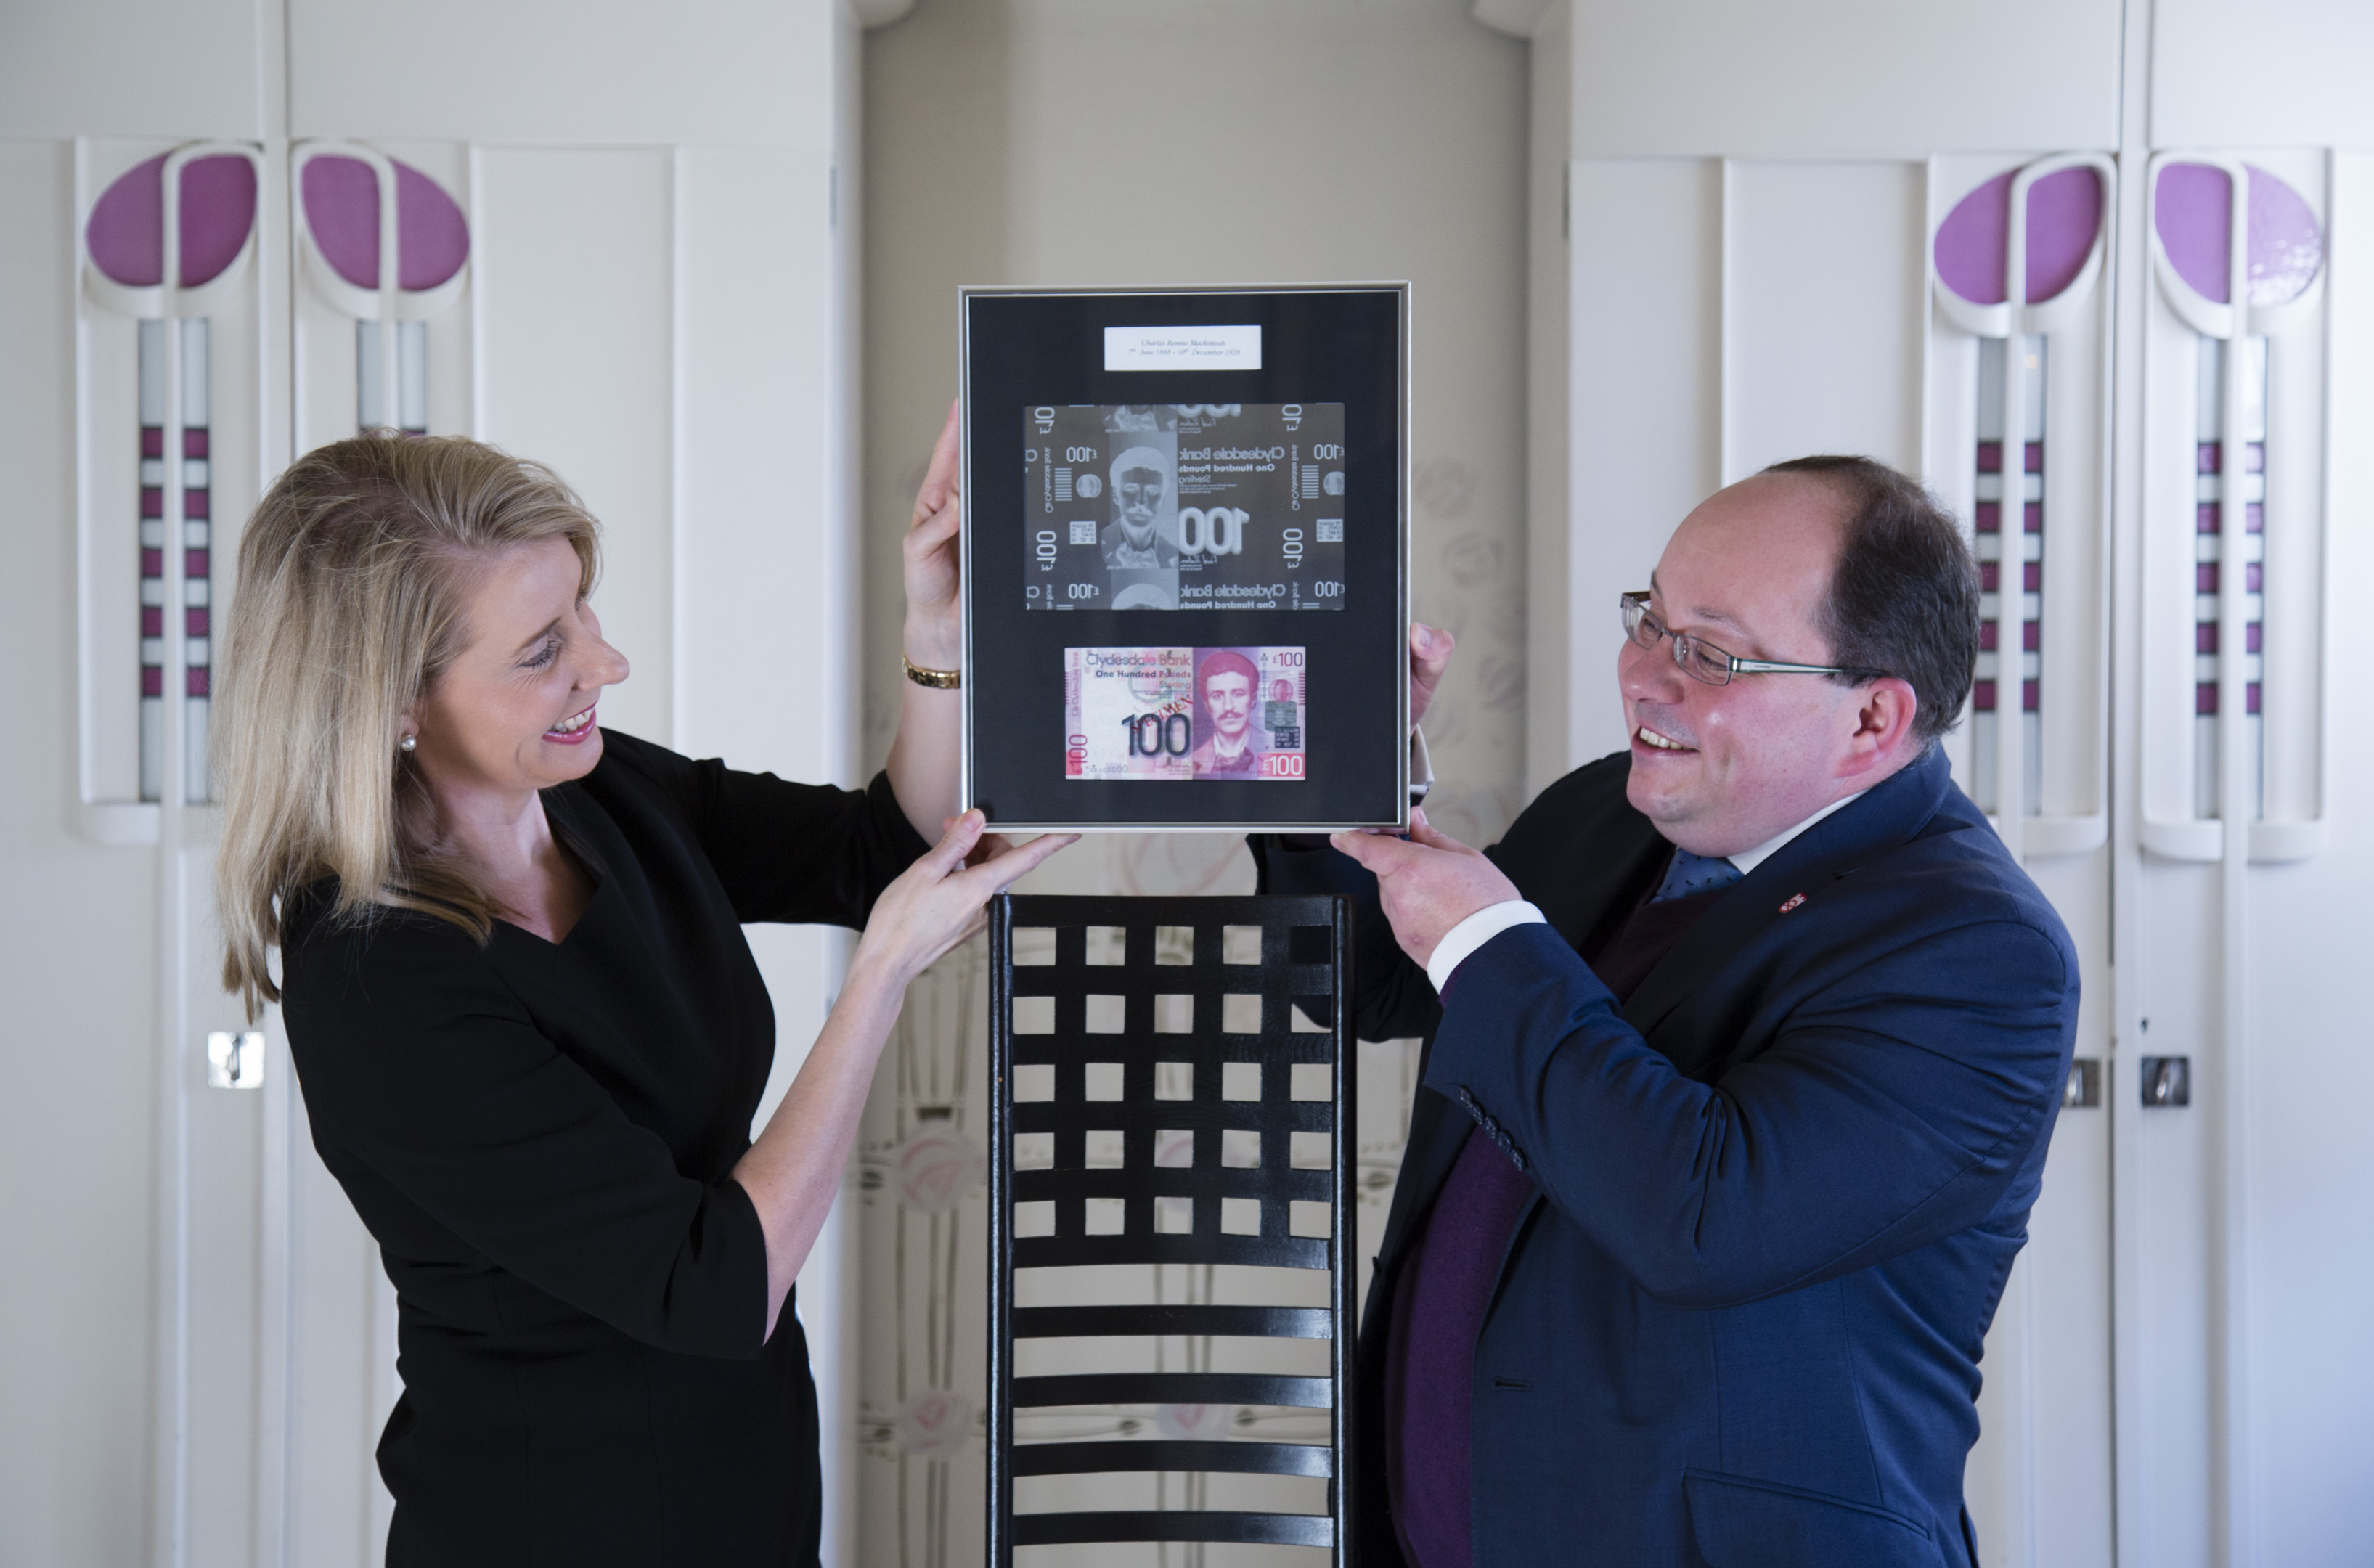 Debbie Crosbie of The Clydesdale Bank with Richard Williams of The National Trust for Scotland at The Hill House in Helensburgh, designed by Charles Rennie Mackintosh, as an urgent fundraising appeal has been launched to raise £1.5 million to build a protective box around the crumbling architectural masterpiece. (Martin Shields/PA Wire)